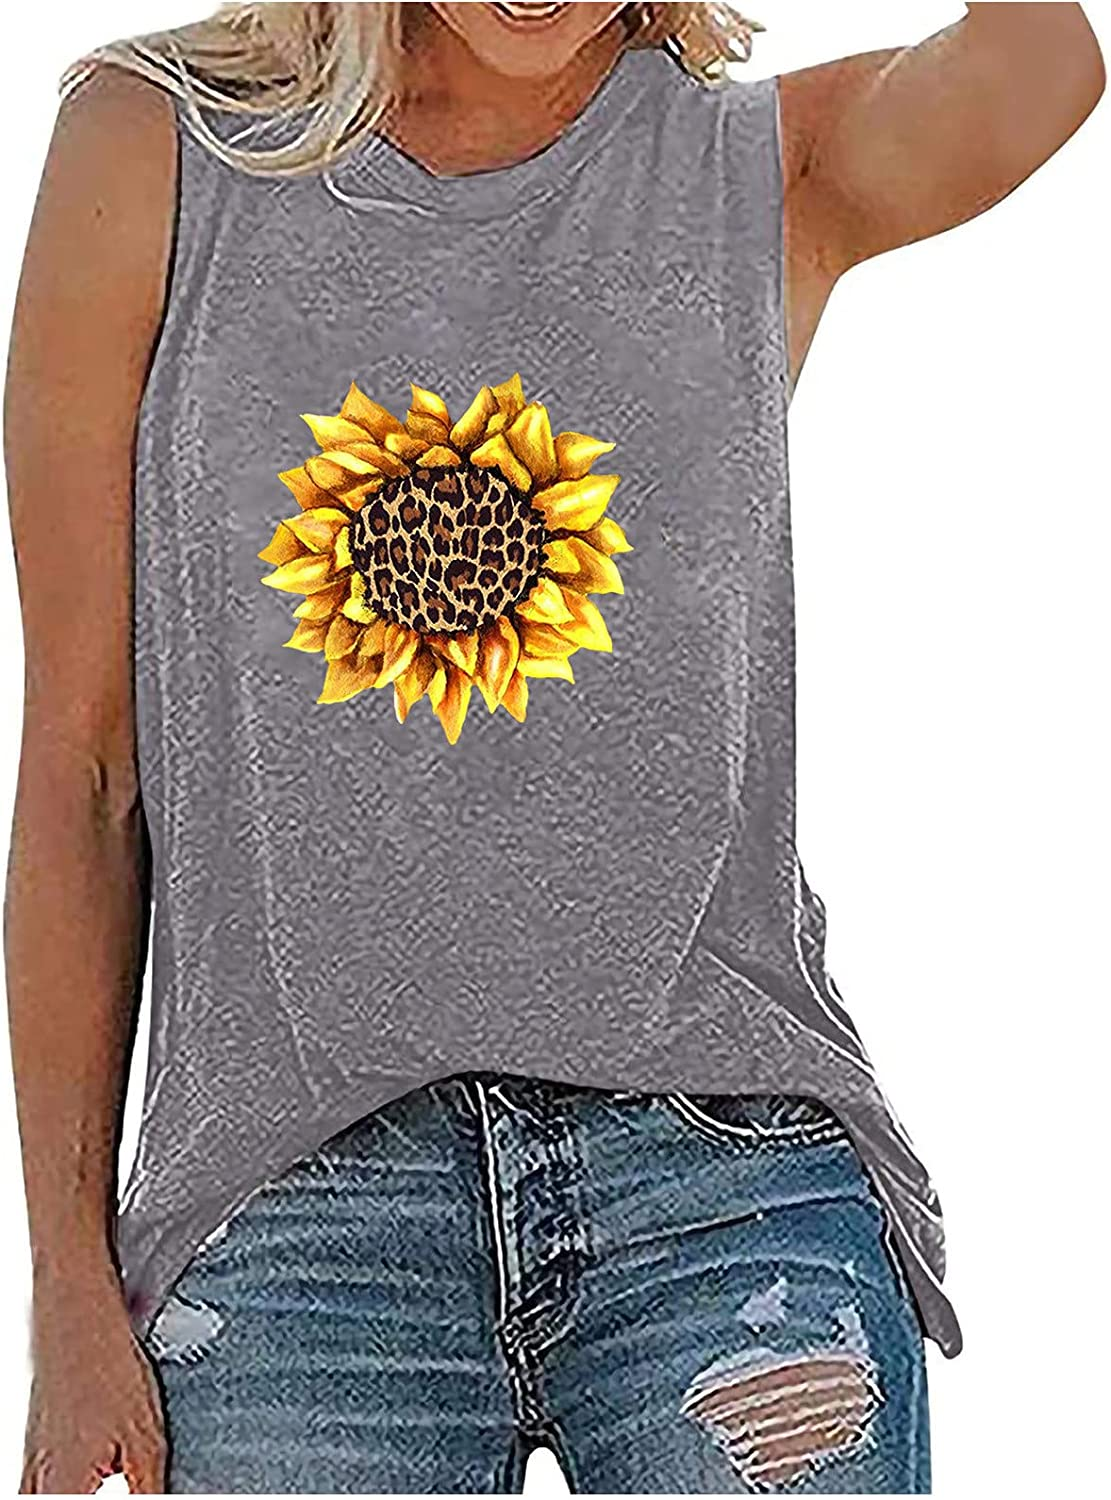 Women's Casual Printing Crew Neck Sleeveness Tops Loose Vest Blouses Summer Tops Tee Shirts Blouse